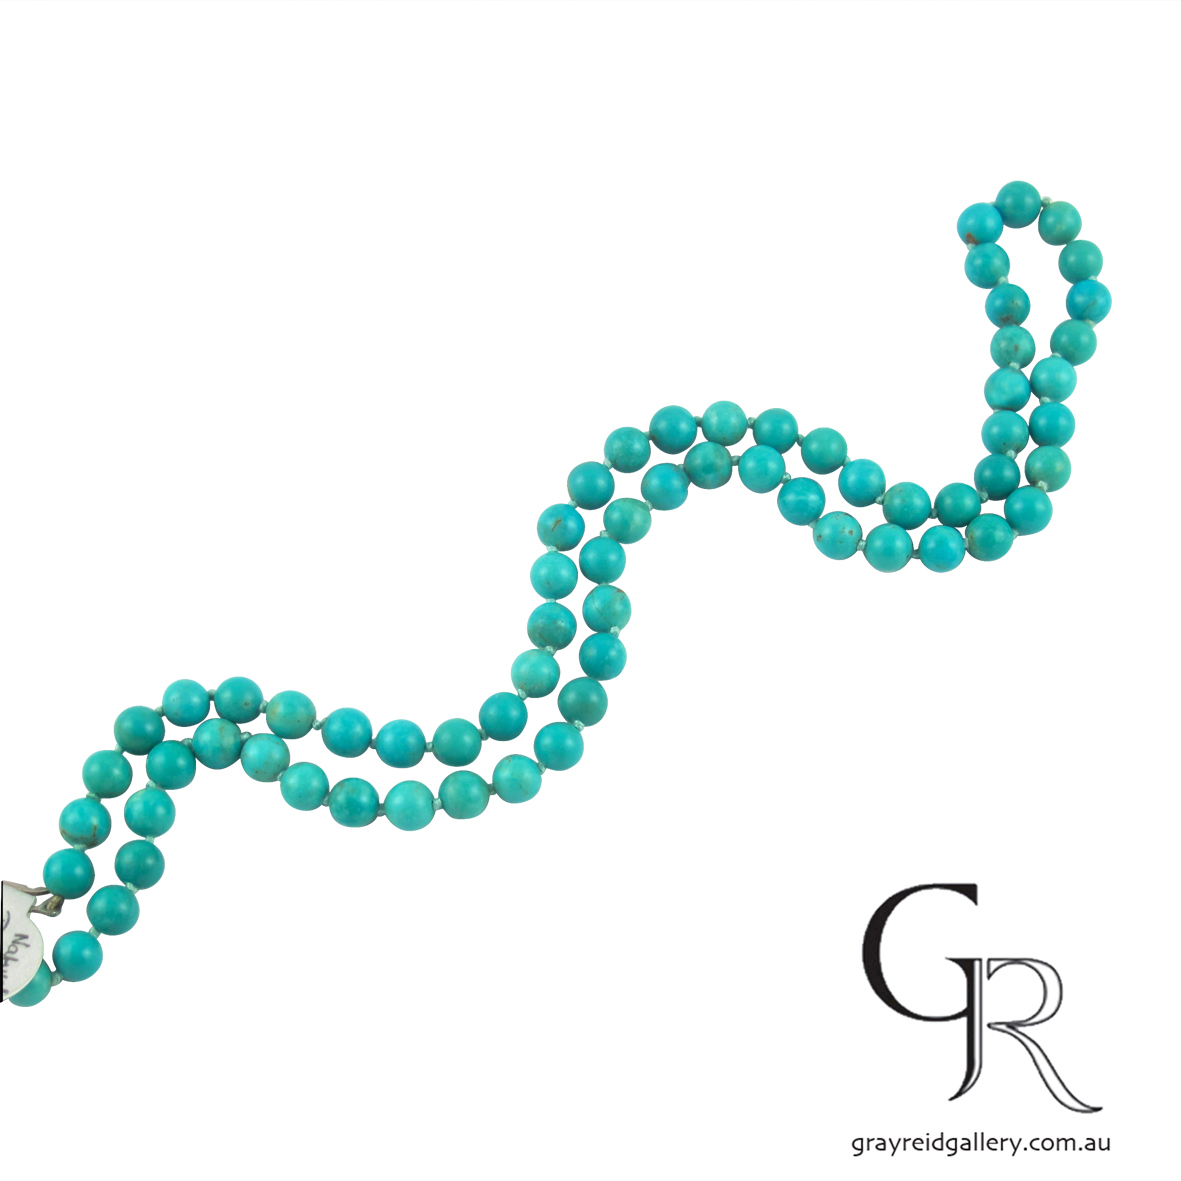 natural turquoise beads melbourne gray reid gallery.jpg